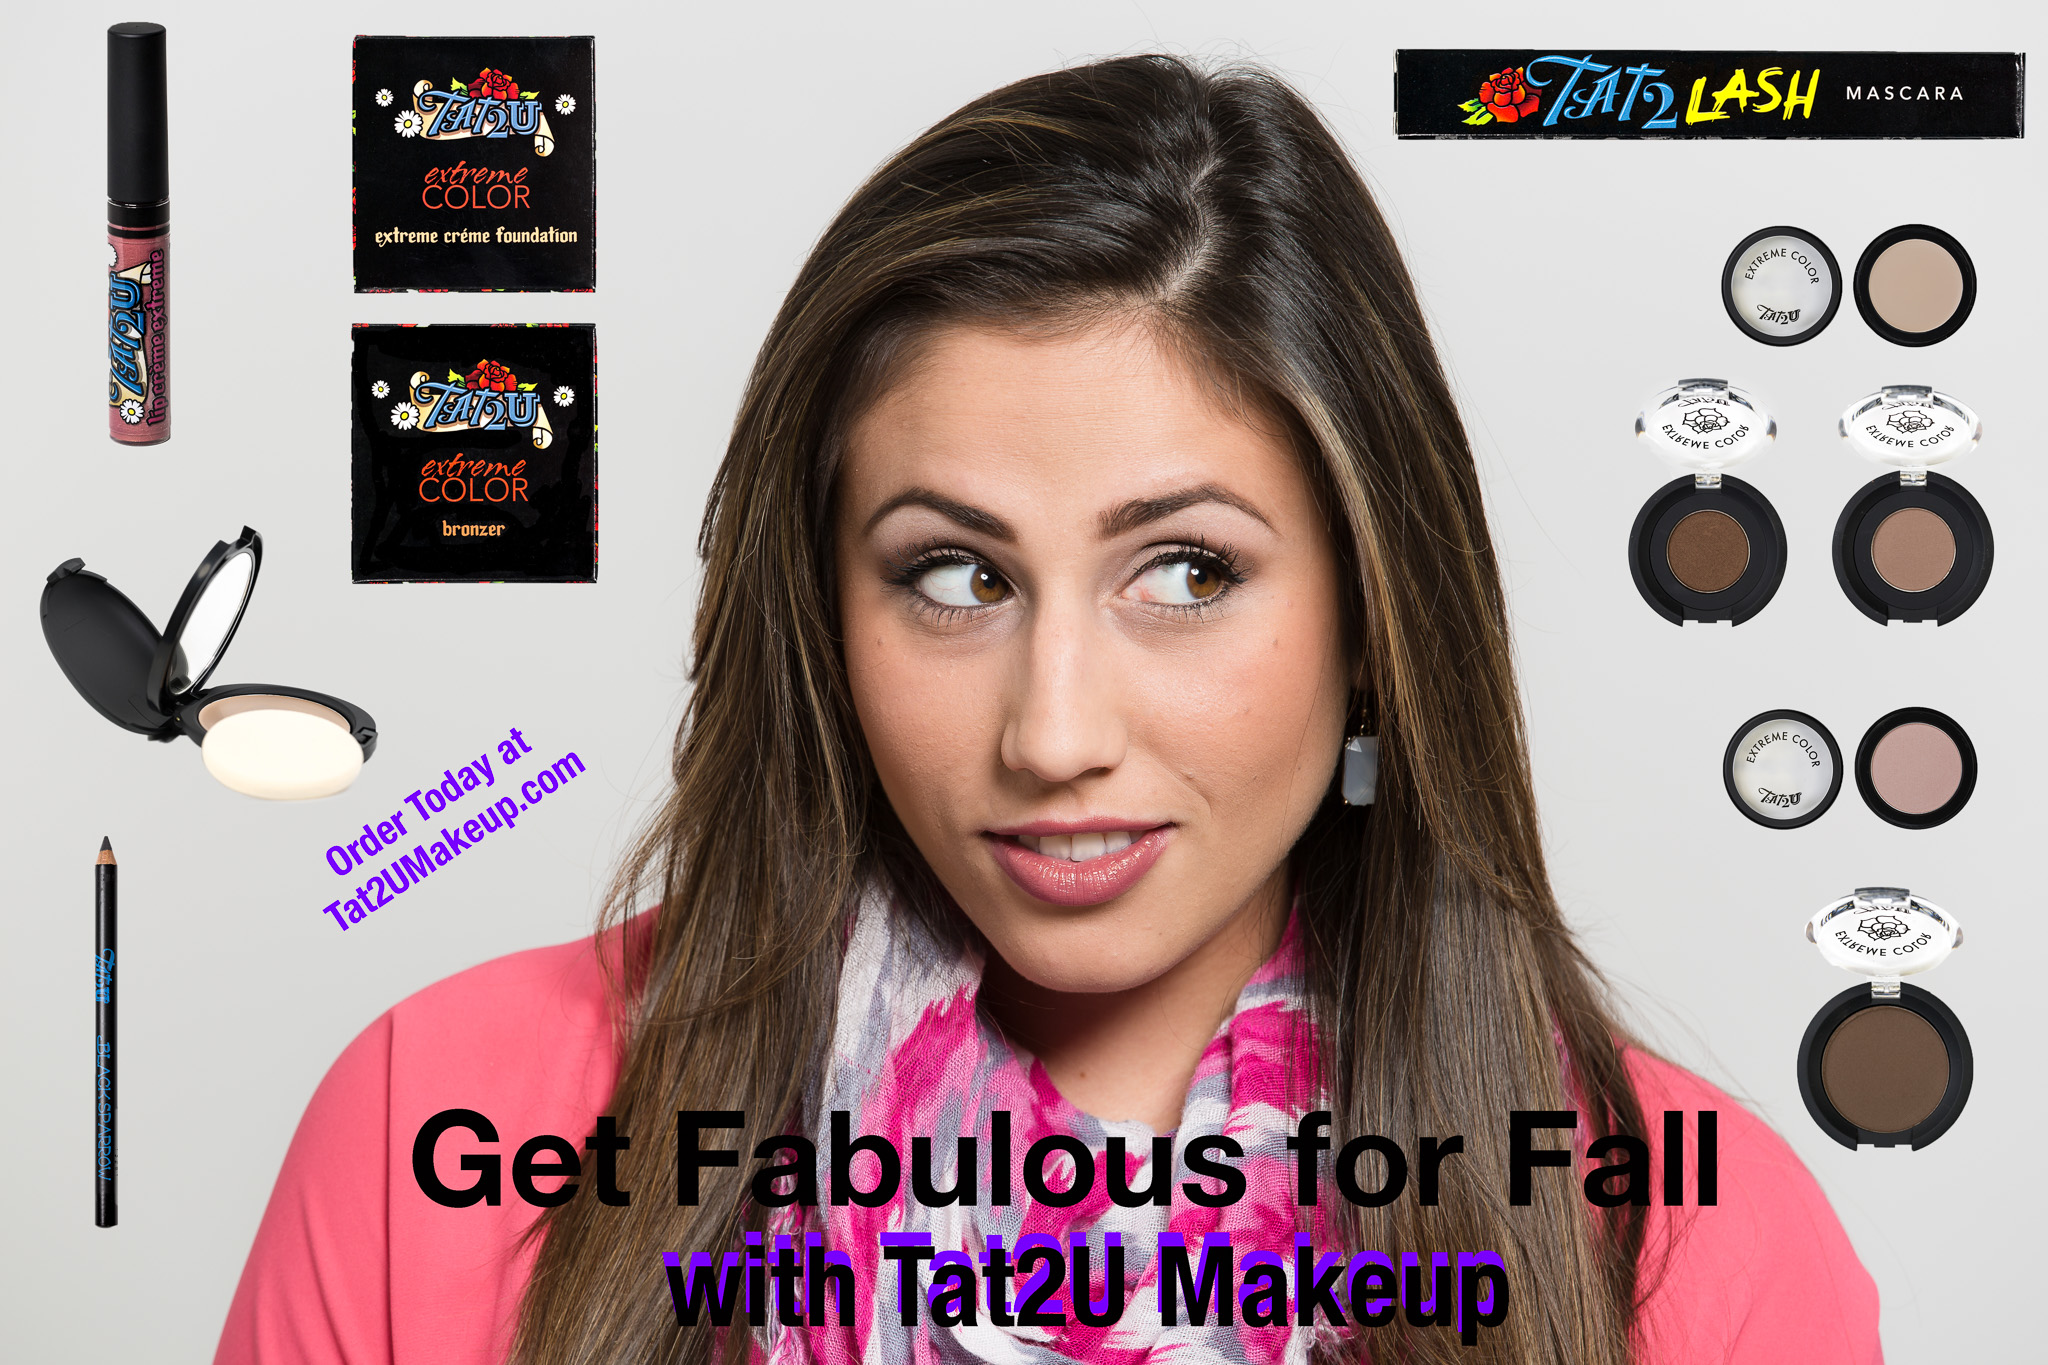 Fabulous for Fall Products